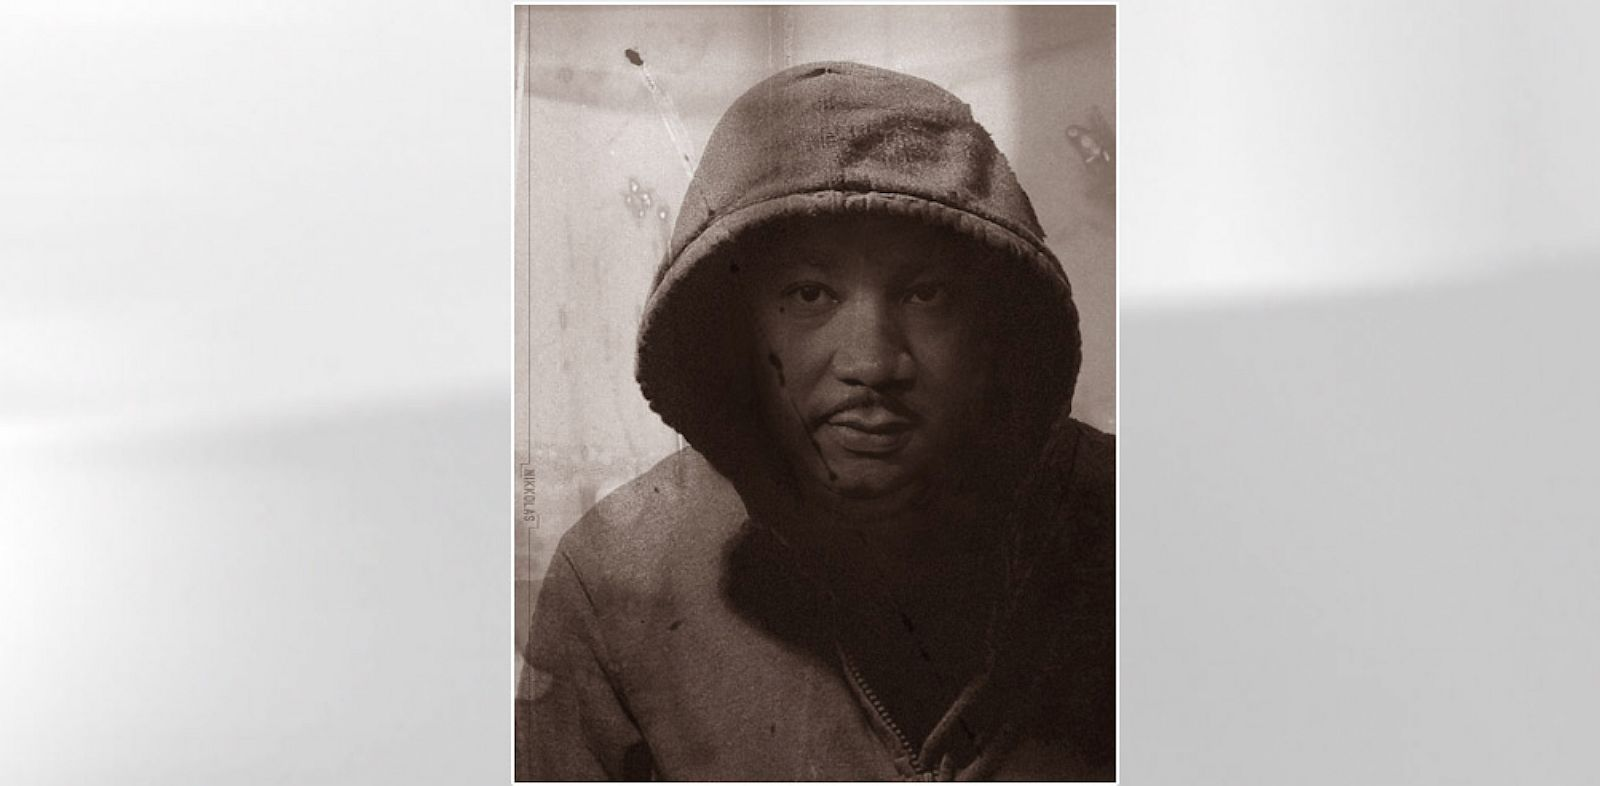 PHOTO: Artist Nikkolas Smith created this illustration of Martin Luther King, Jr. wearing a hoodie.